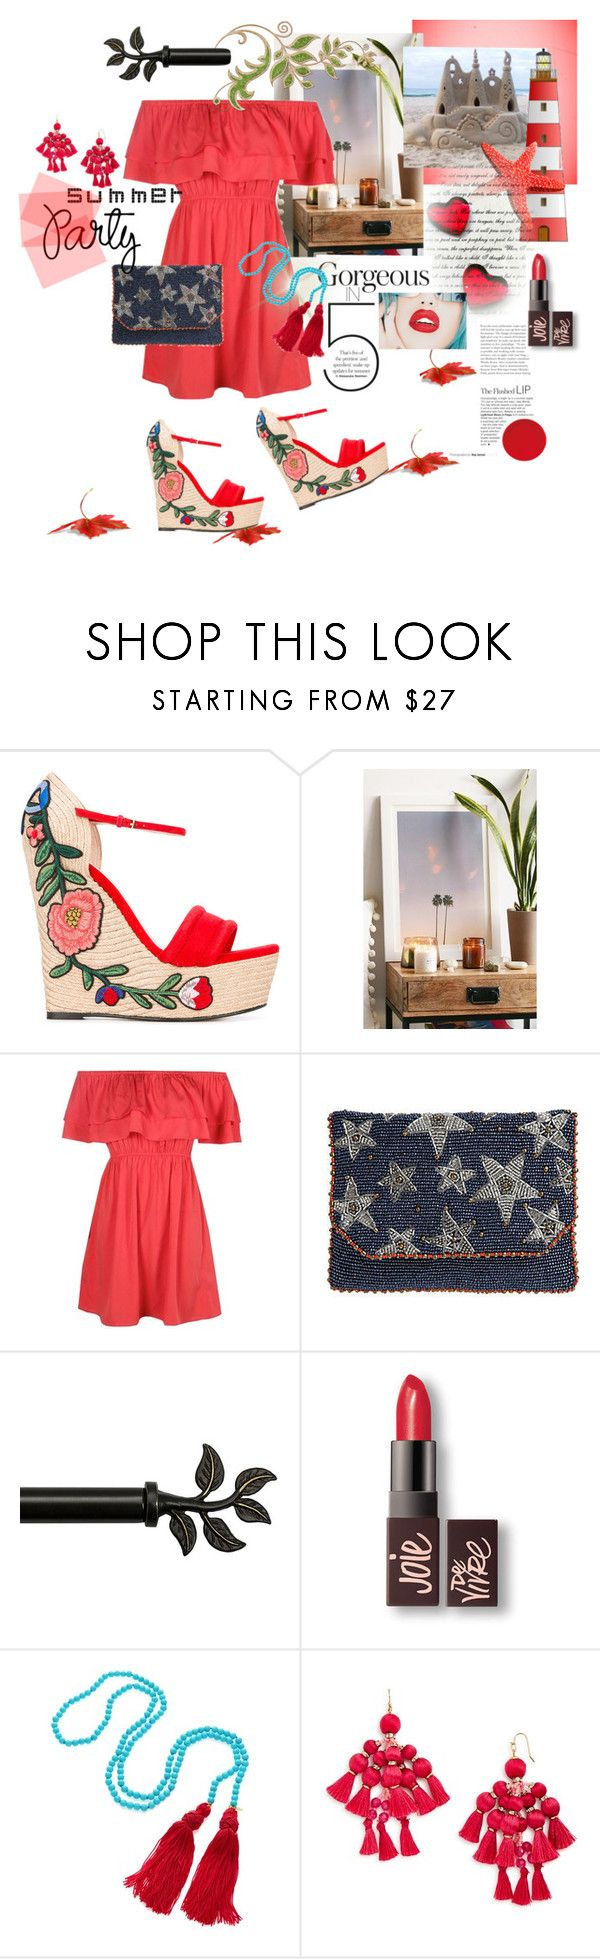 """""""Summer party"""" by pilar2017 ❤ liked on Polyvore featuring Gucci, Max Wanger, Boohoo, Mary Frances Accessories, Bali, Rupaul, Laura Mercier, Kenneth Jay Lane and Kate Spade"""